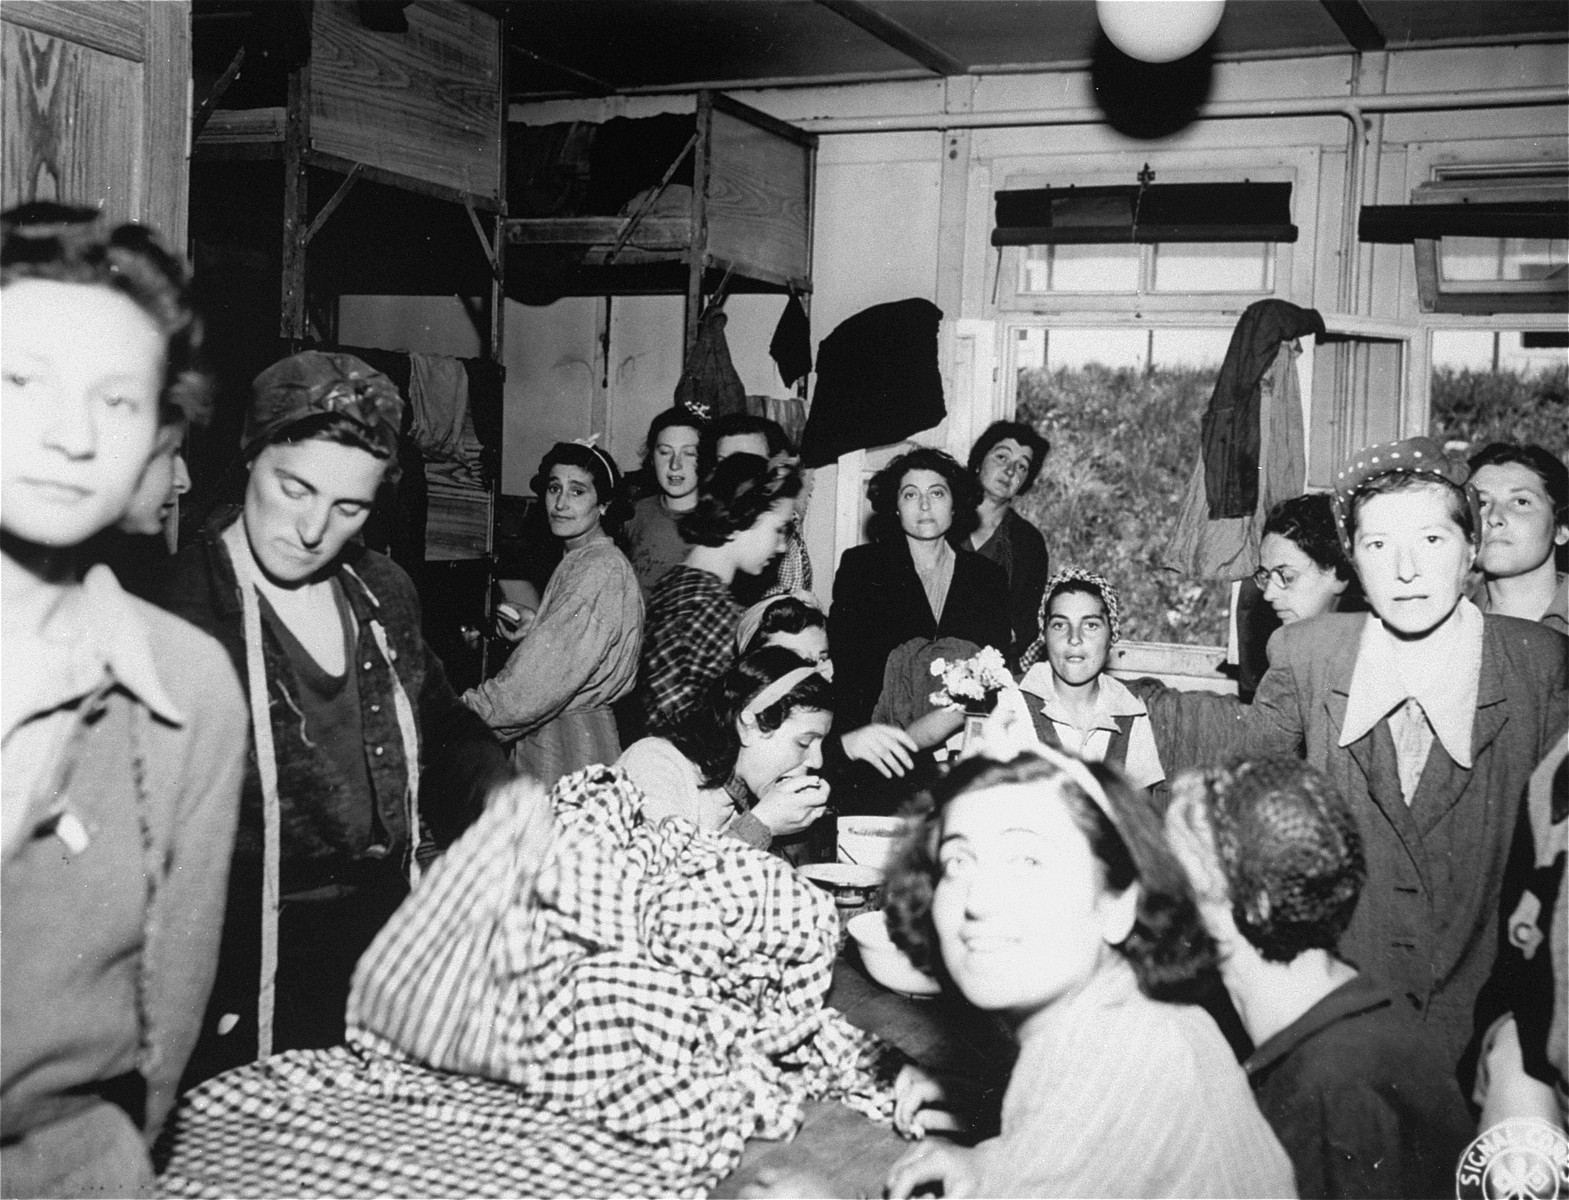 Female survivors wearing civilian clothing gather in a barrack after the liberation of Mauthausen.